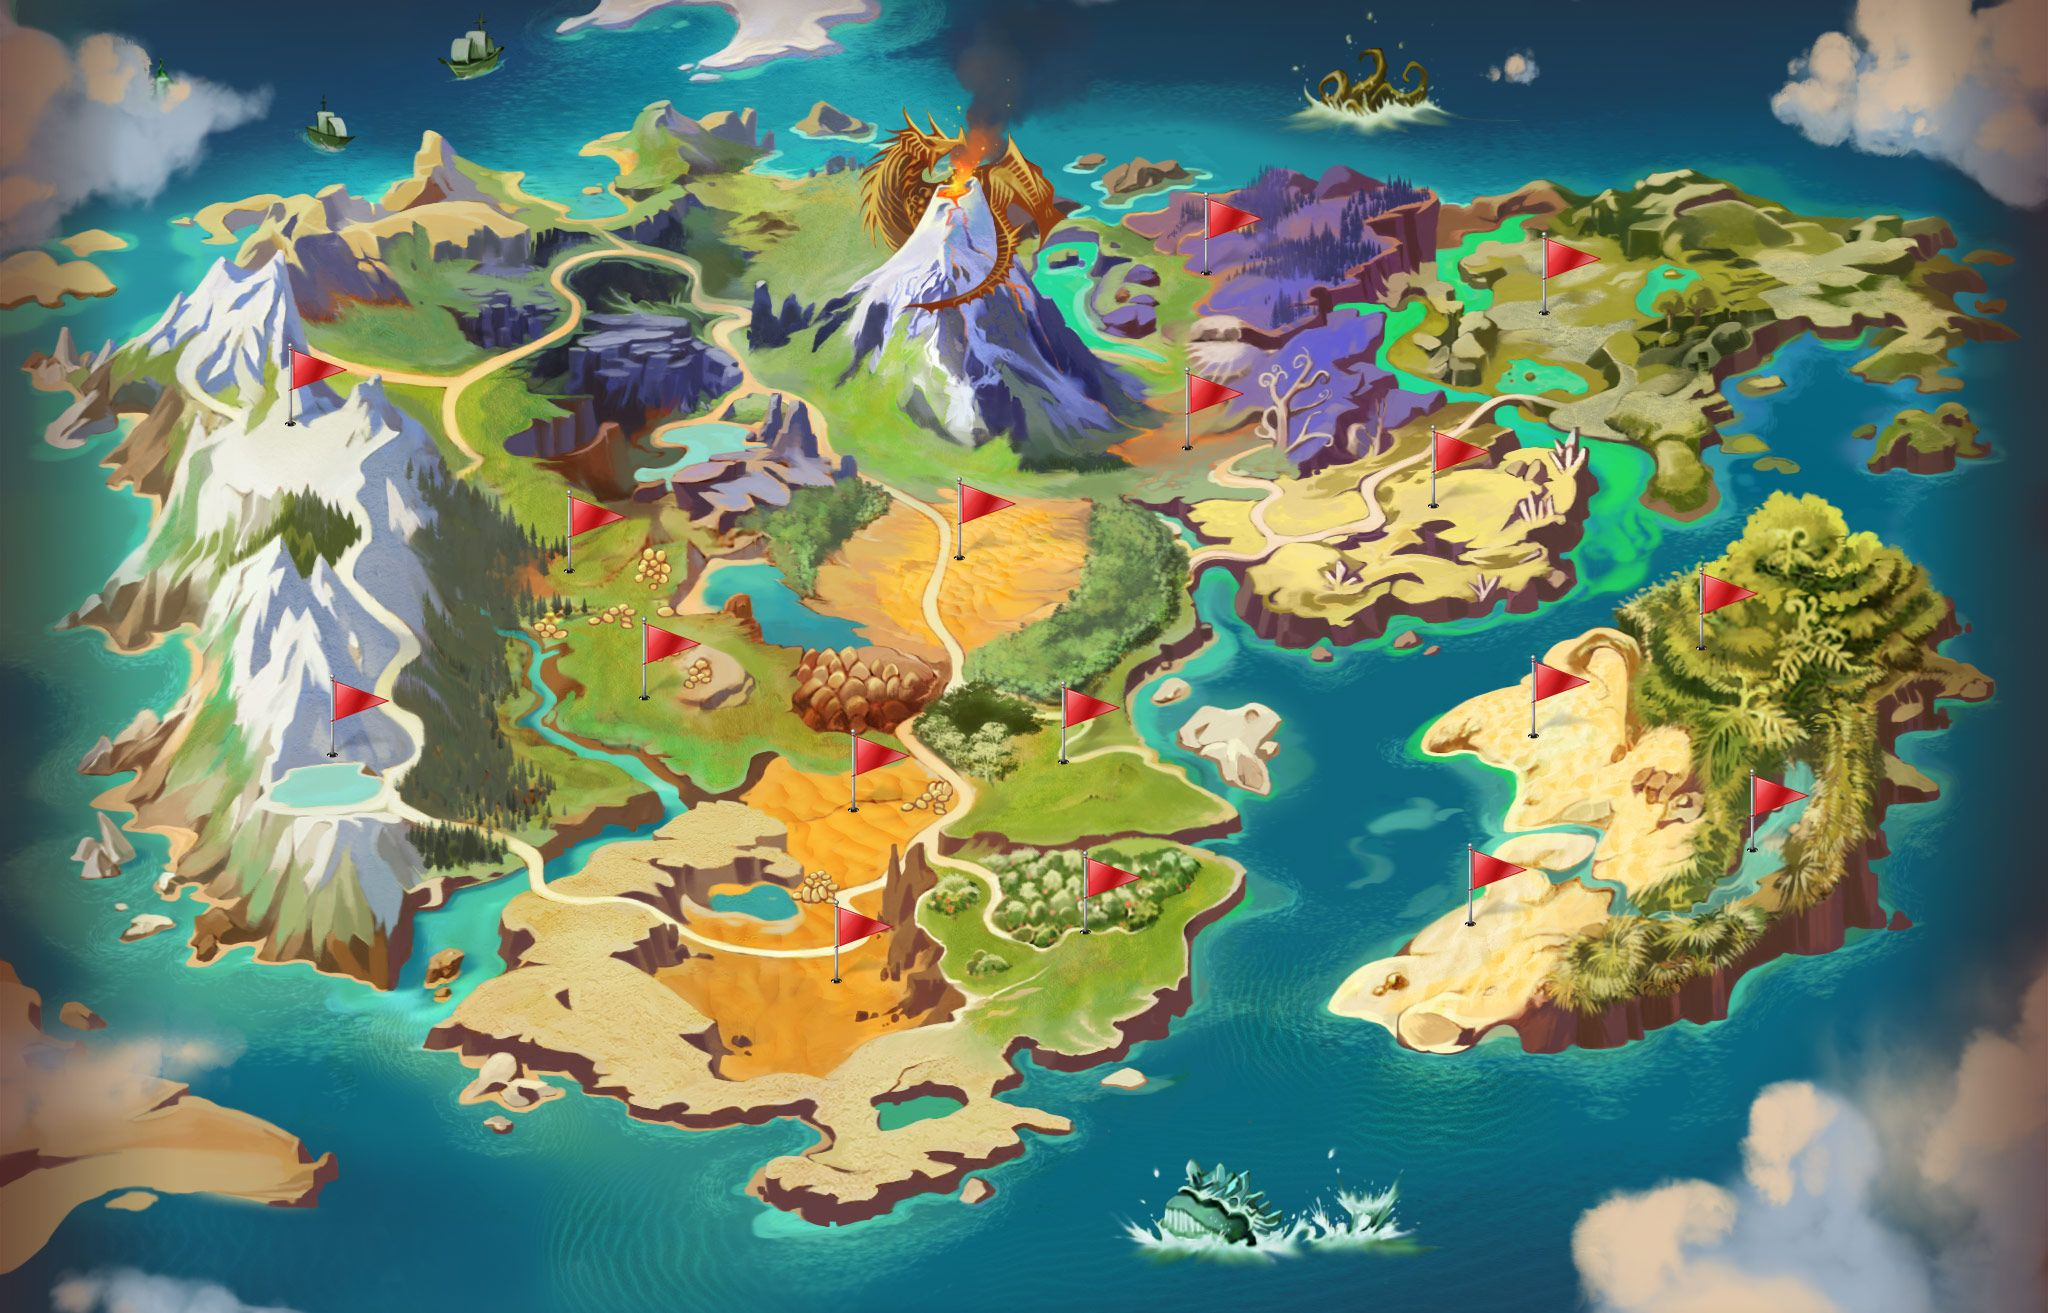 map-pinpoints | Fantasy world map, Dnd world map, Map games on made up maps, snes maps, google maps, cool site maps, metro bus houston tx maps, fictional maps, epic d d maps, interesting maps, cartography maps, mmo maps, fishing maps, all of westeros maps, dragon warrior monsters 2 maps, jrpg maps, prank maps, bully scholarship edition cheats maps, house maps, simple risk maps, all the locations of the death camp maps, dvd maps,